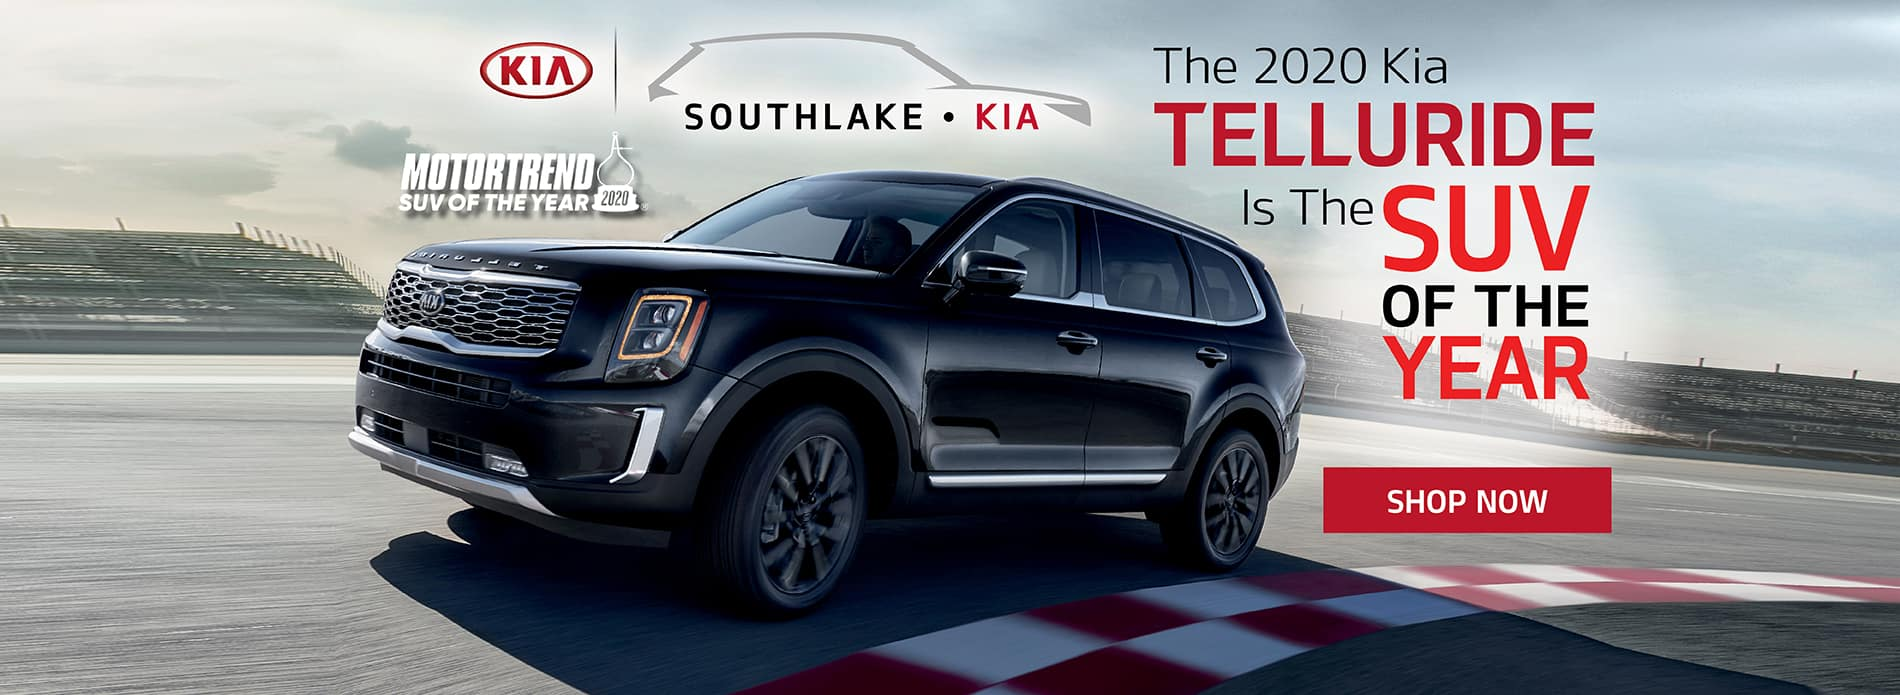 The 2020 Kia Telluride is MotorTrends SUV of the Year